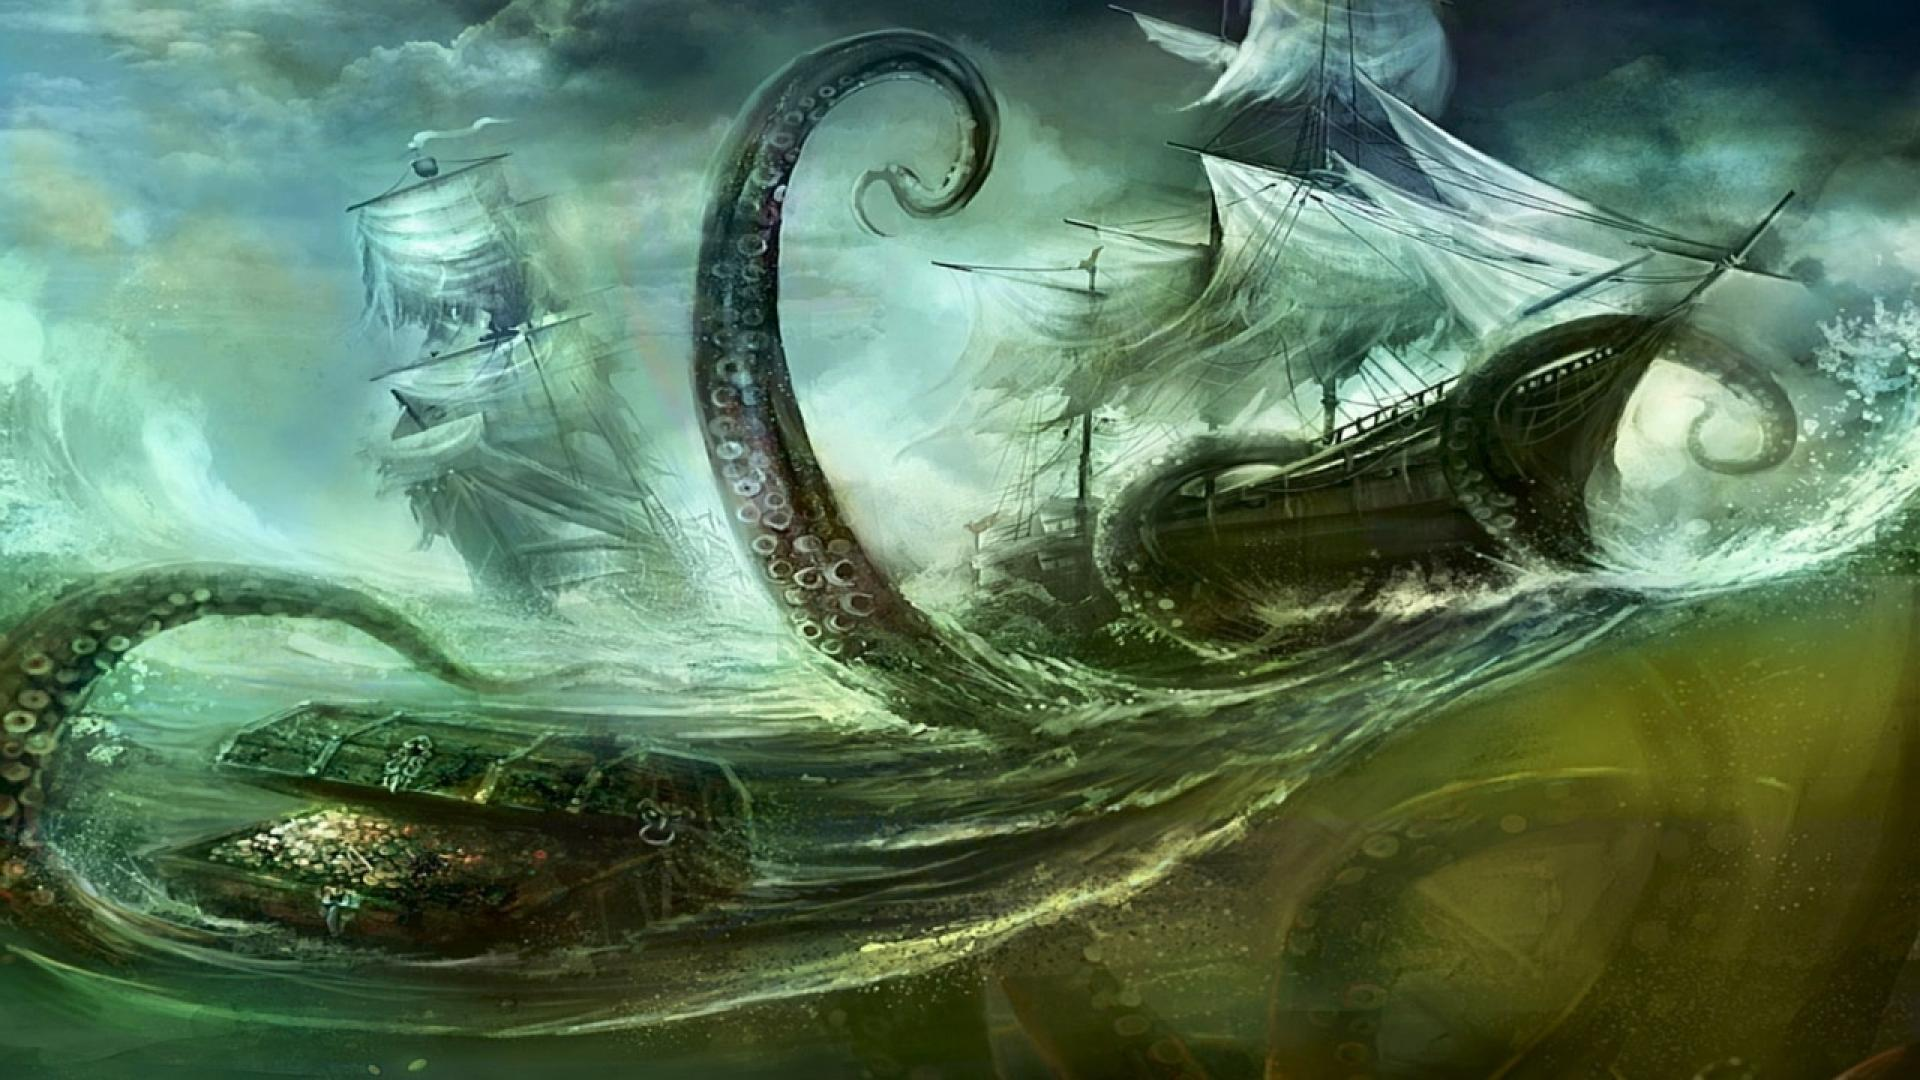 Kraken attack ships desktop 1280x800 hd wallpaper 131315